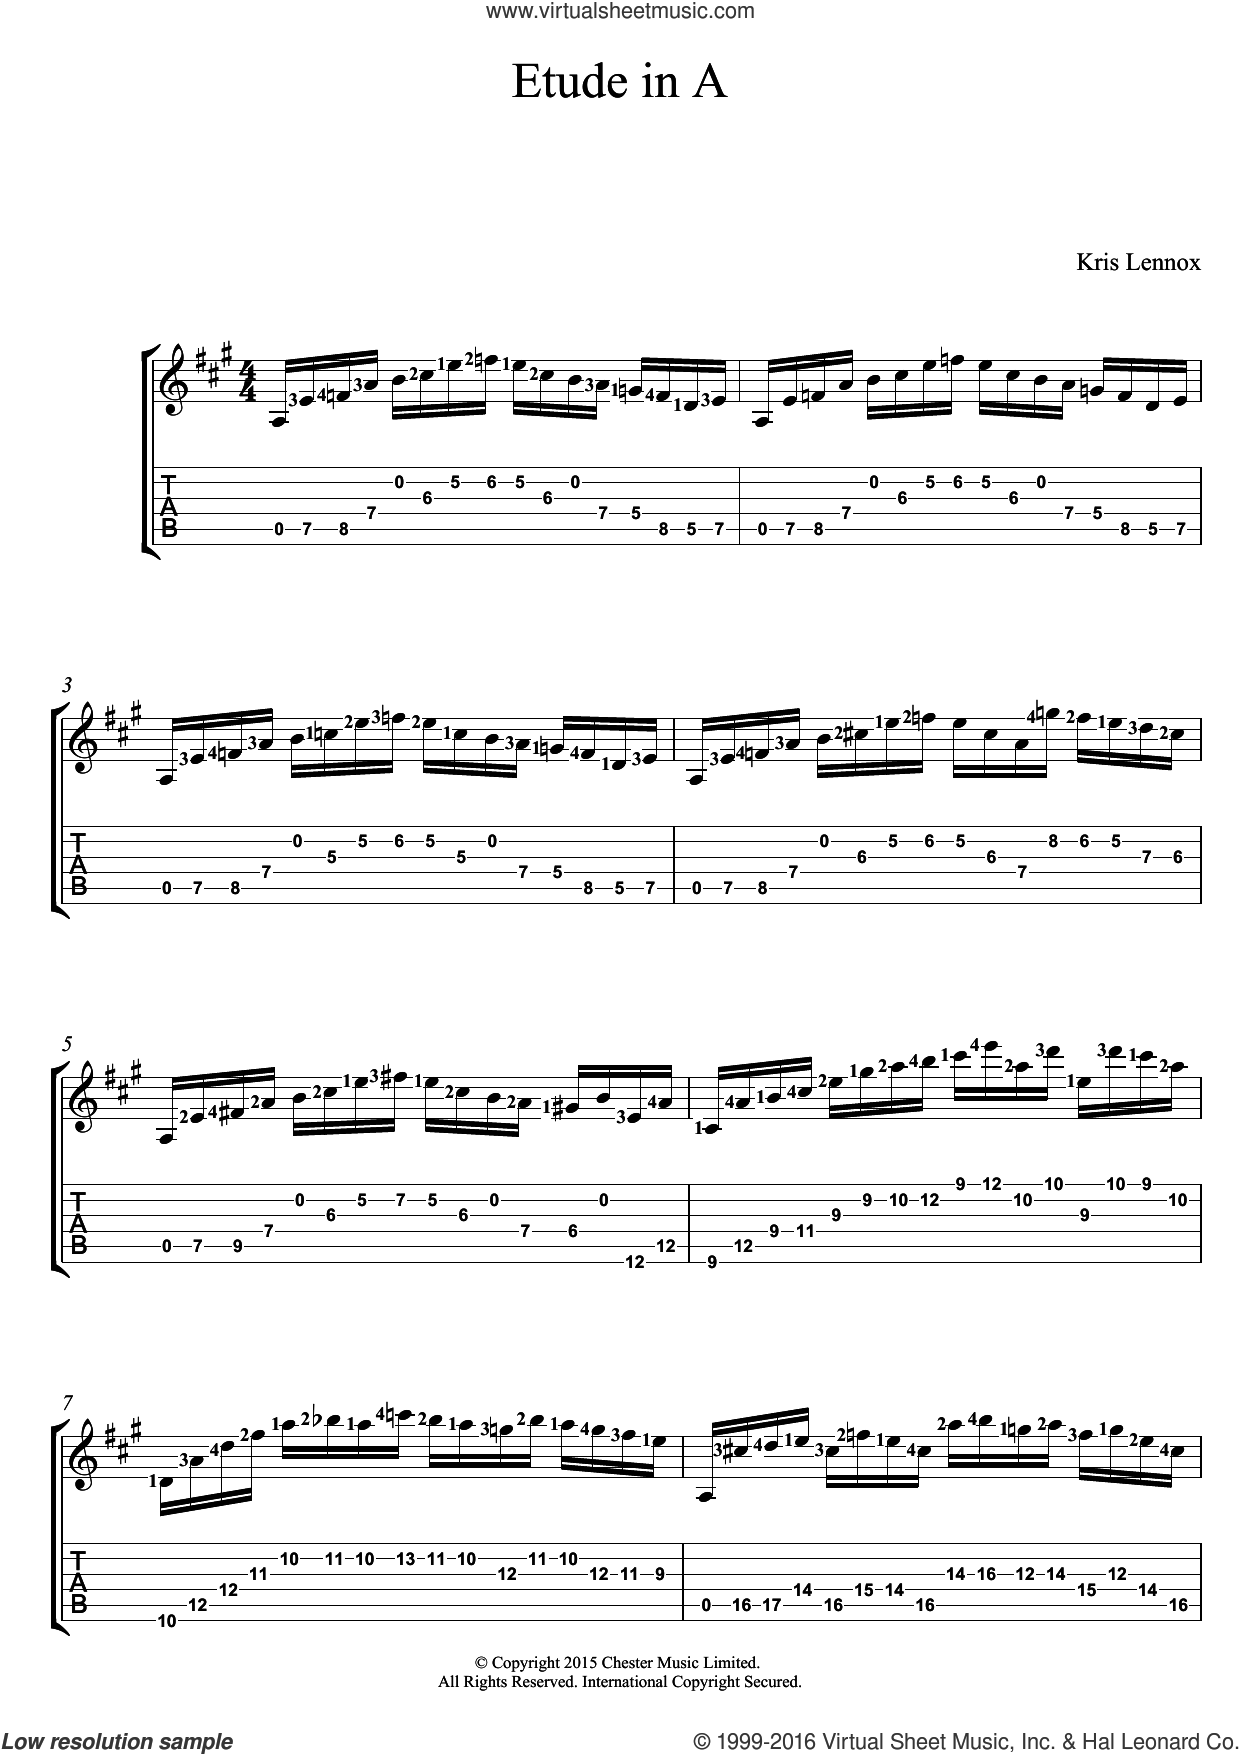 Etude In A sheet music for guitar (tablature) by Kris Lennox. Score Image Preview.